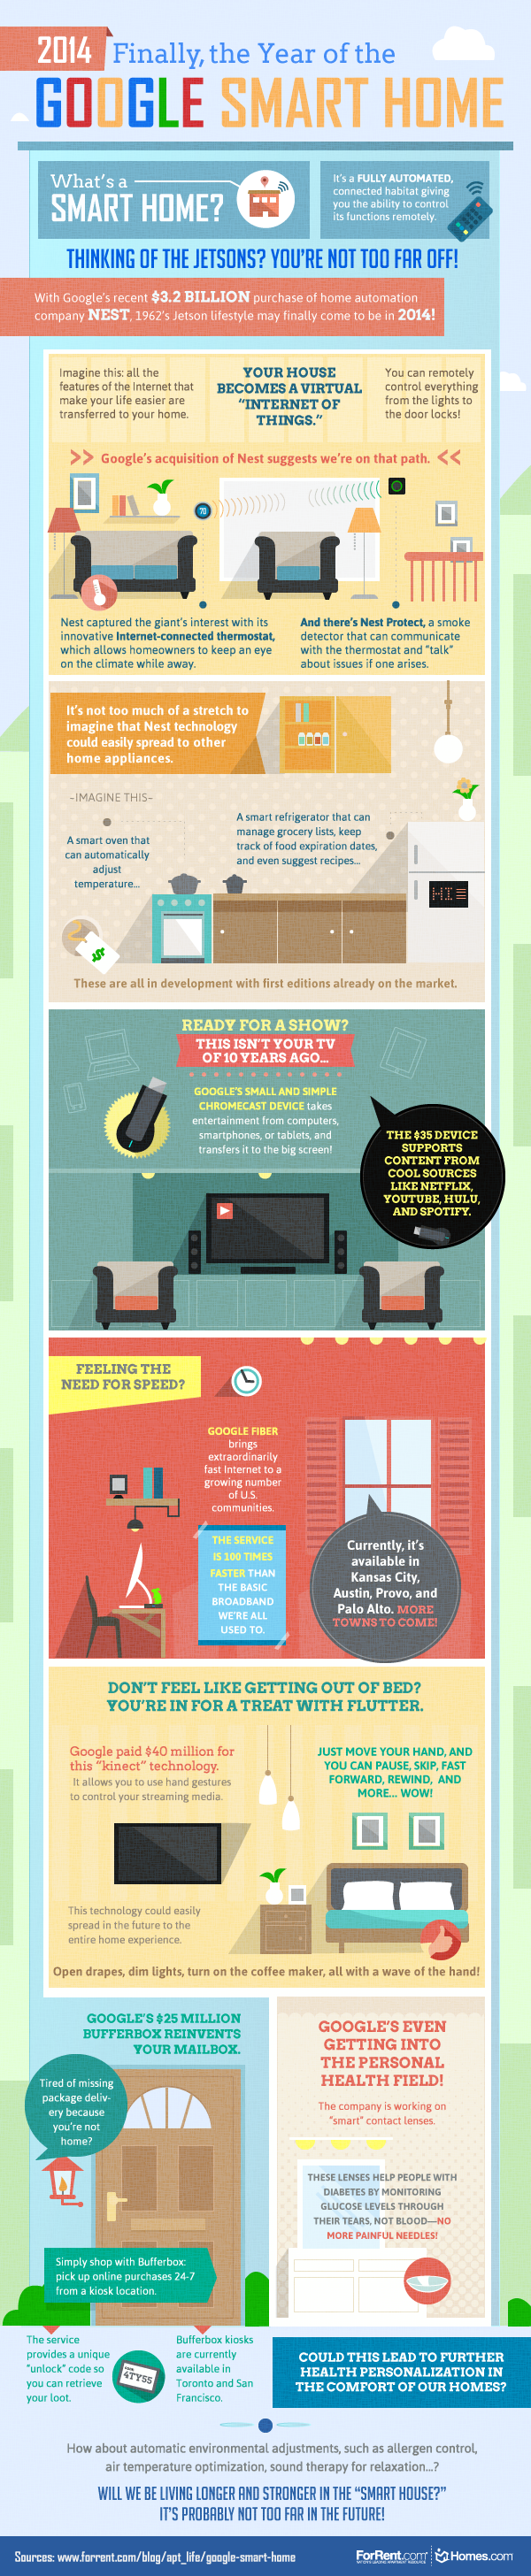 The Google Smart Home #infographic